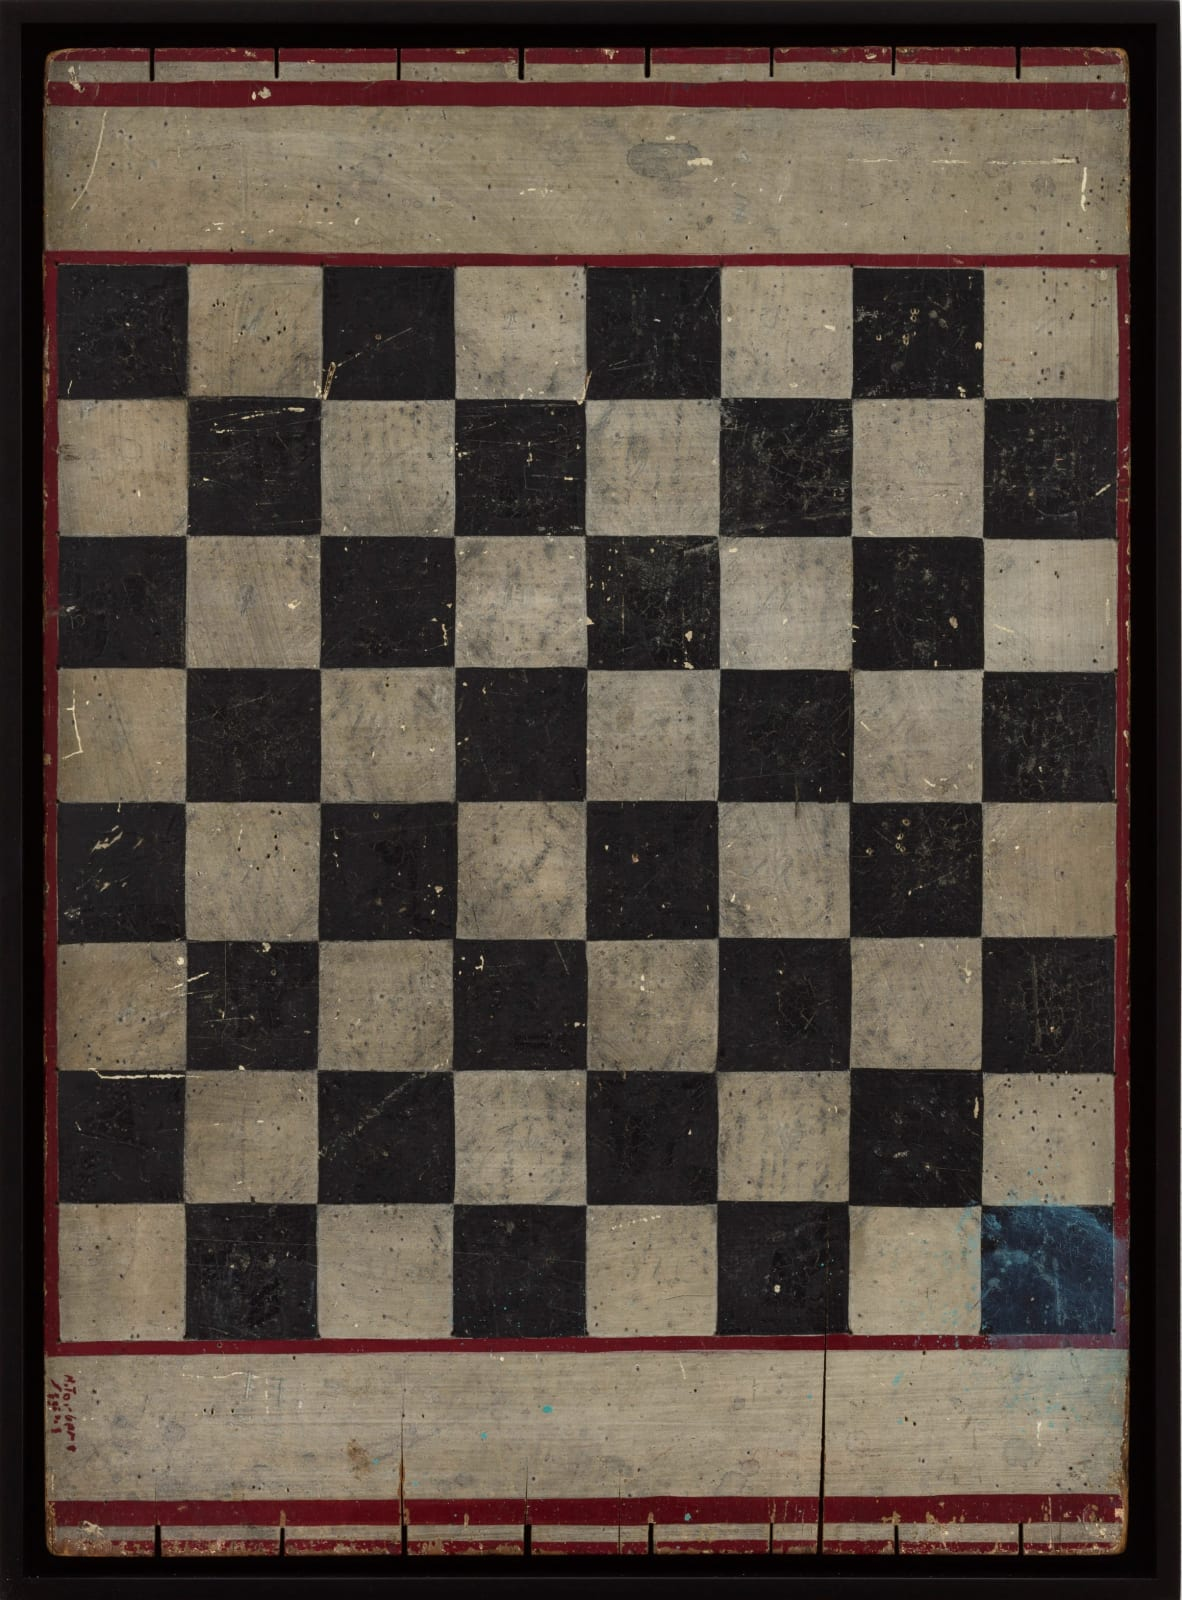 CHECKERS GAME BOARD, C. 1910-1920 Enamel on wood panel 16.5 x 22.5 in. 41.9 x 57.1 cm. (AU 164)